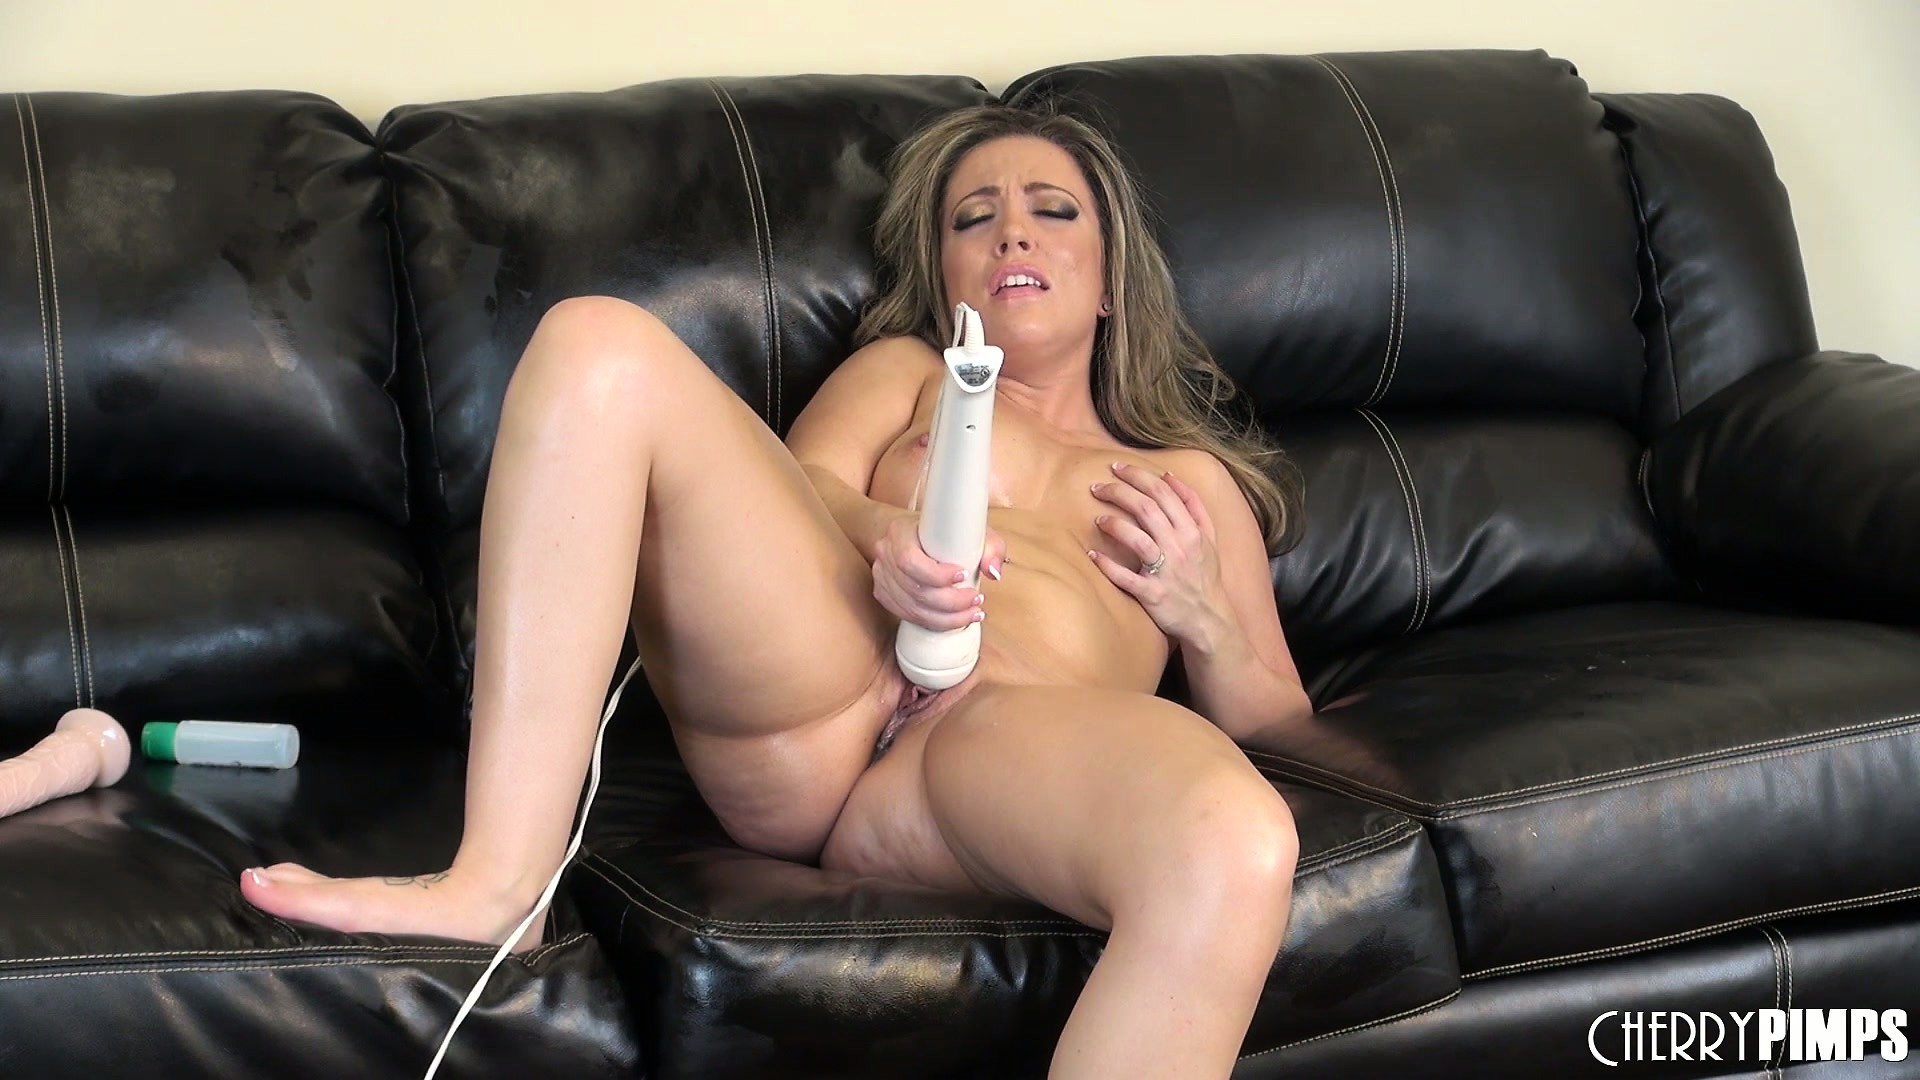 Porn Tube of Carmen's Moans Of Delight Fill The Room As A Vibrator Works Its Wonders On Her Clit